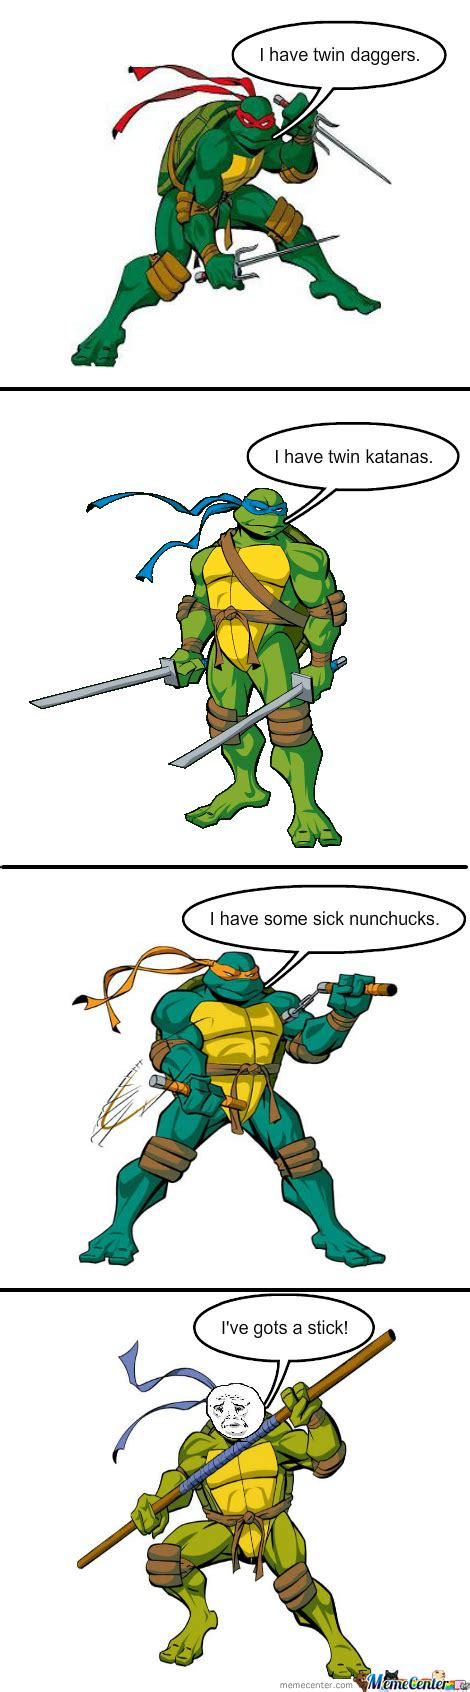 Teenage Mutant Ninja Turtles Meme - teenage mutant ninja turtles memes best collection of